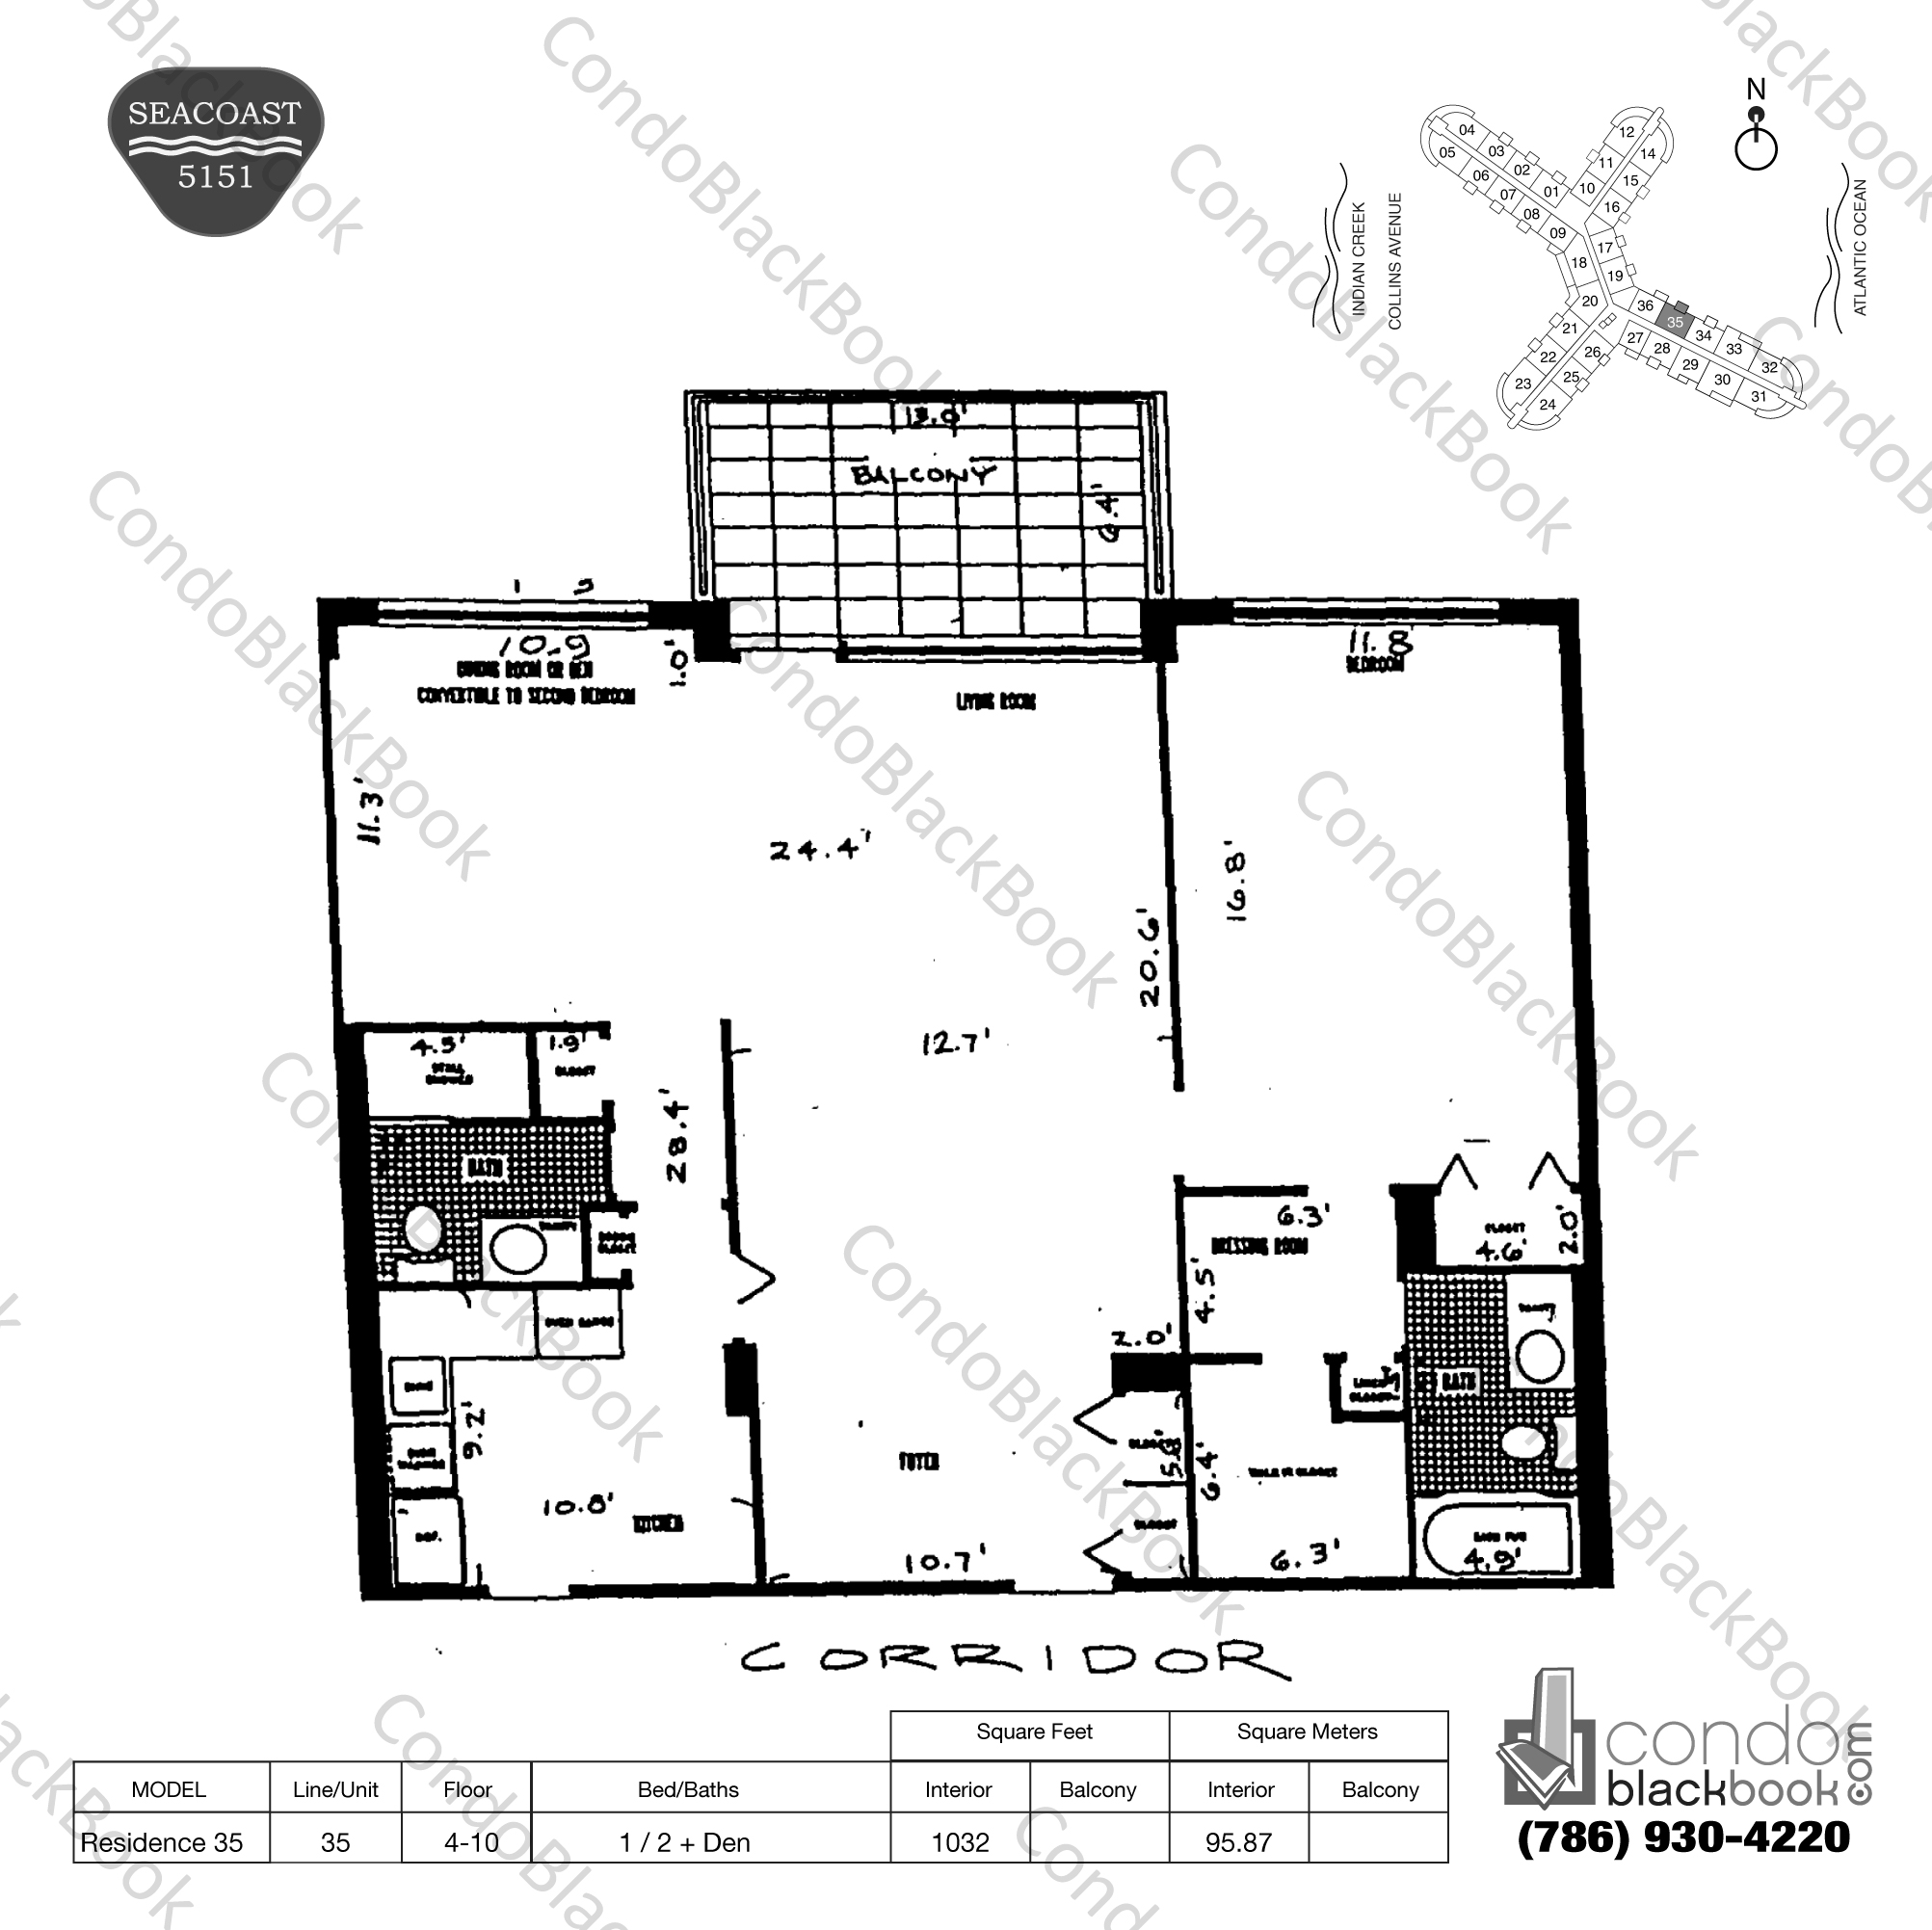 Floor plan for Seacoast 5151 Mid-Beach Miami Beach, model Residence 35, line 35, 1 / 2 + Den bedrooms, 1032 sq ft